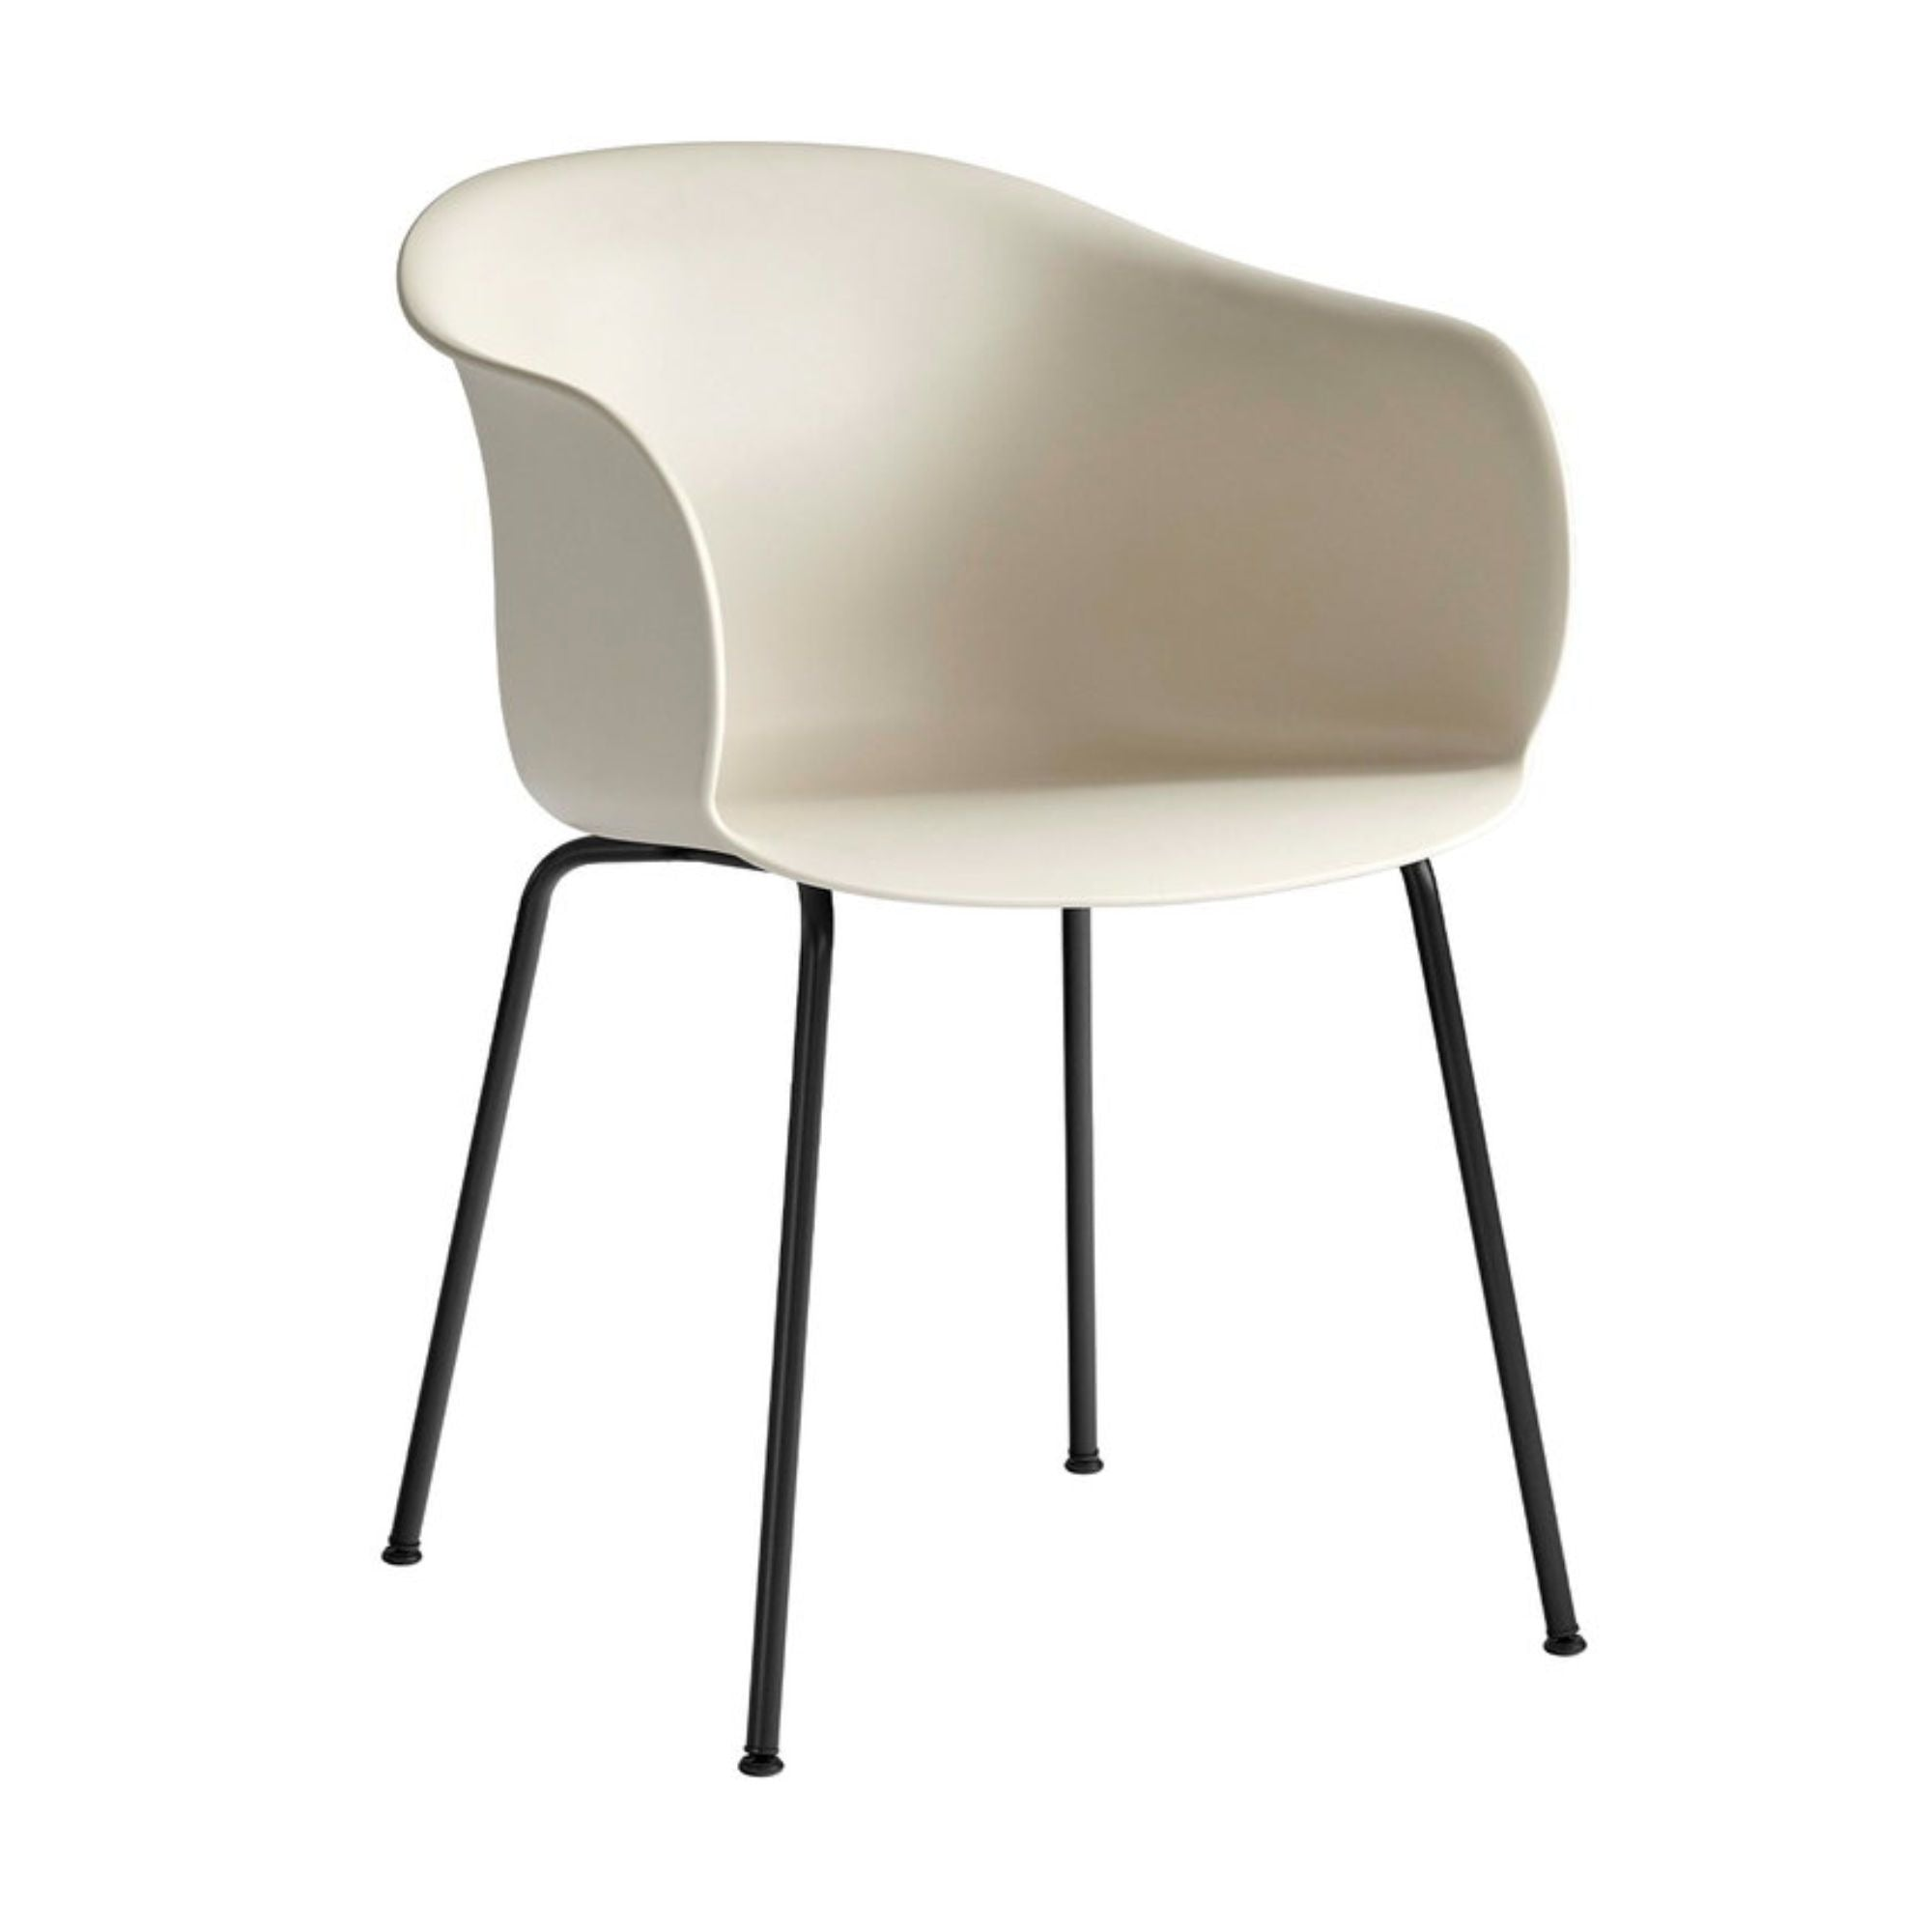 &Tradition JH28 Elefy Chair , Soft Beige - Black